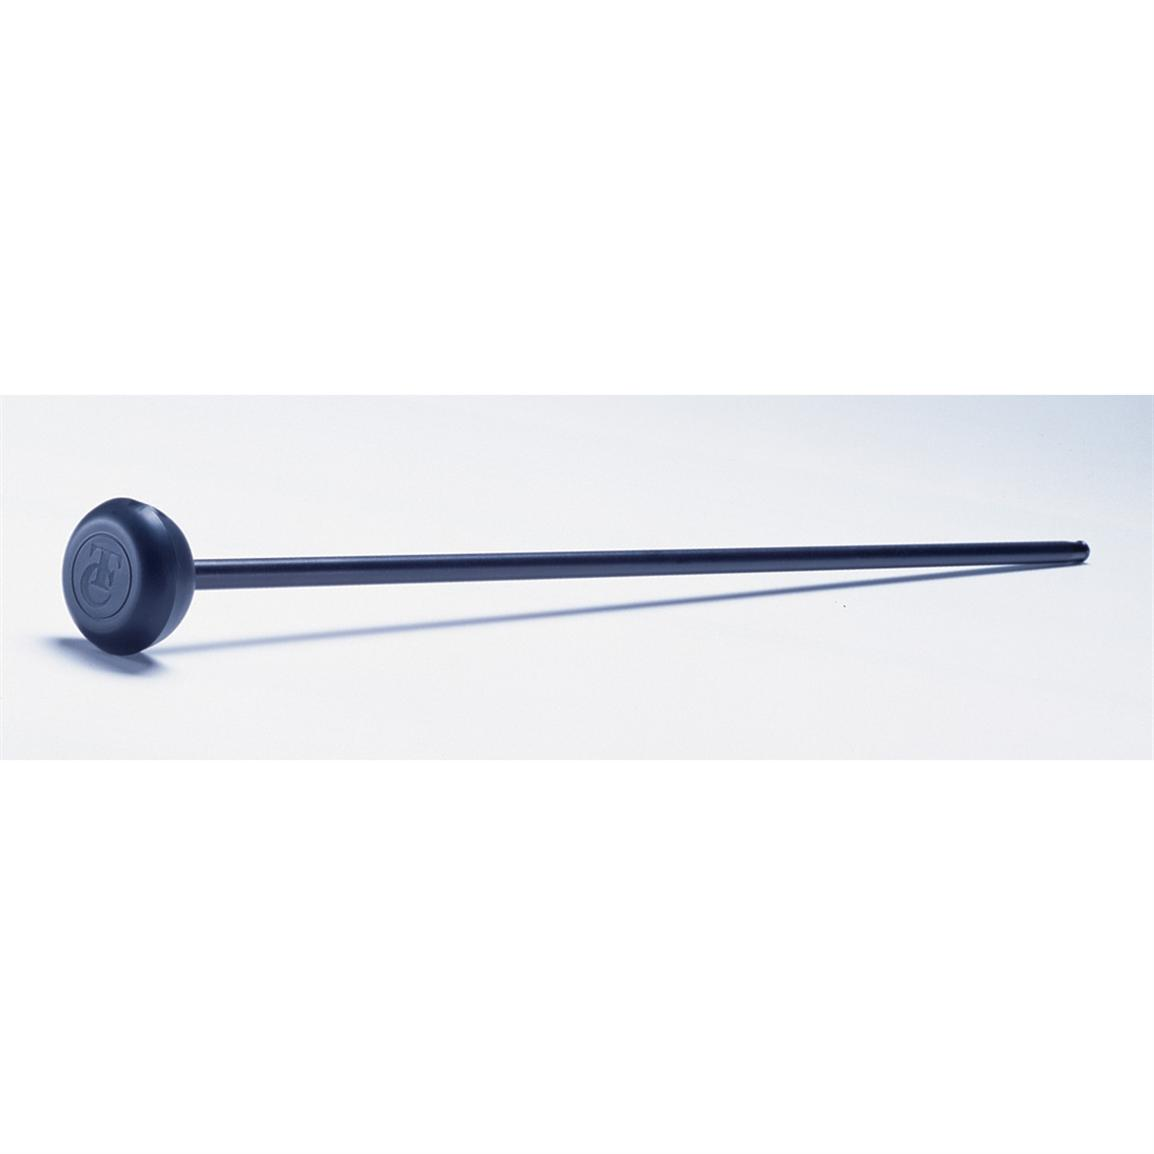 T/C Arms Rugged Range Rod